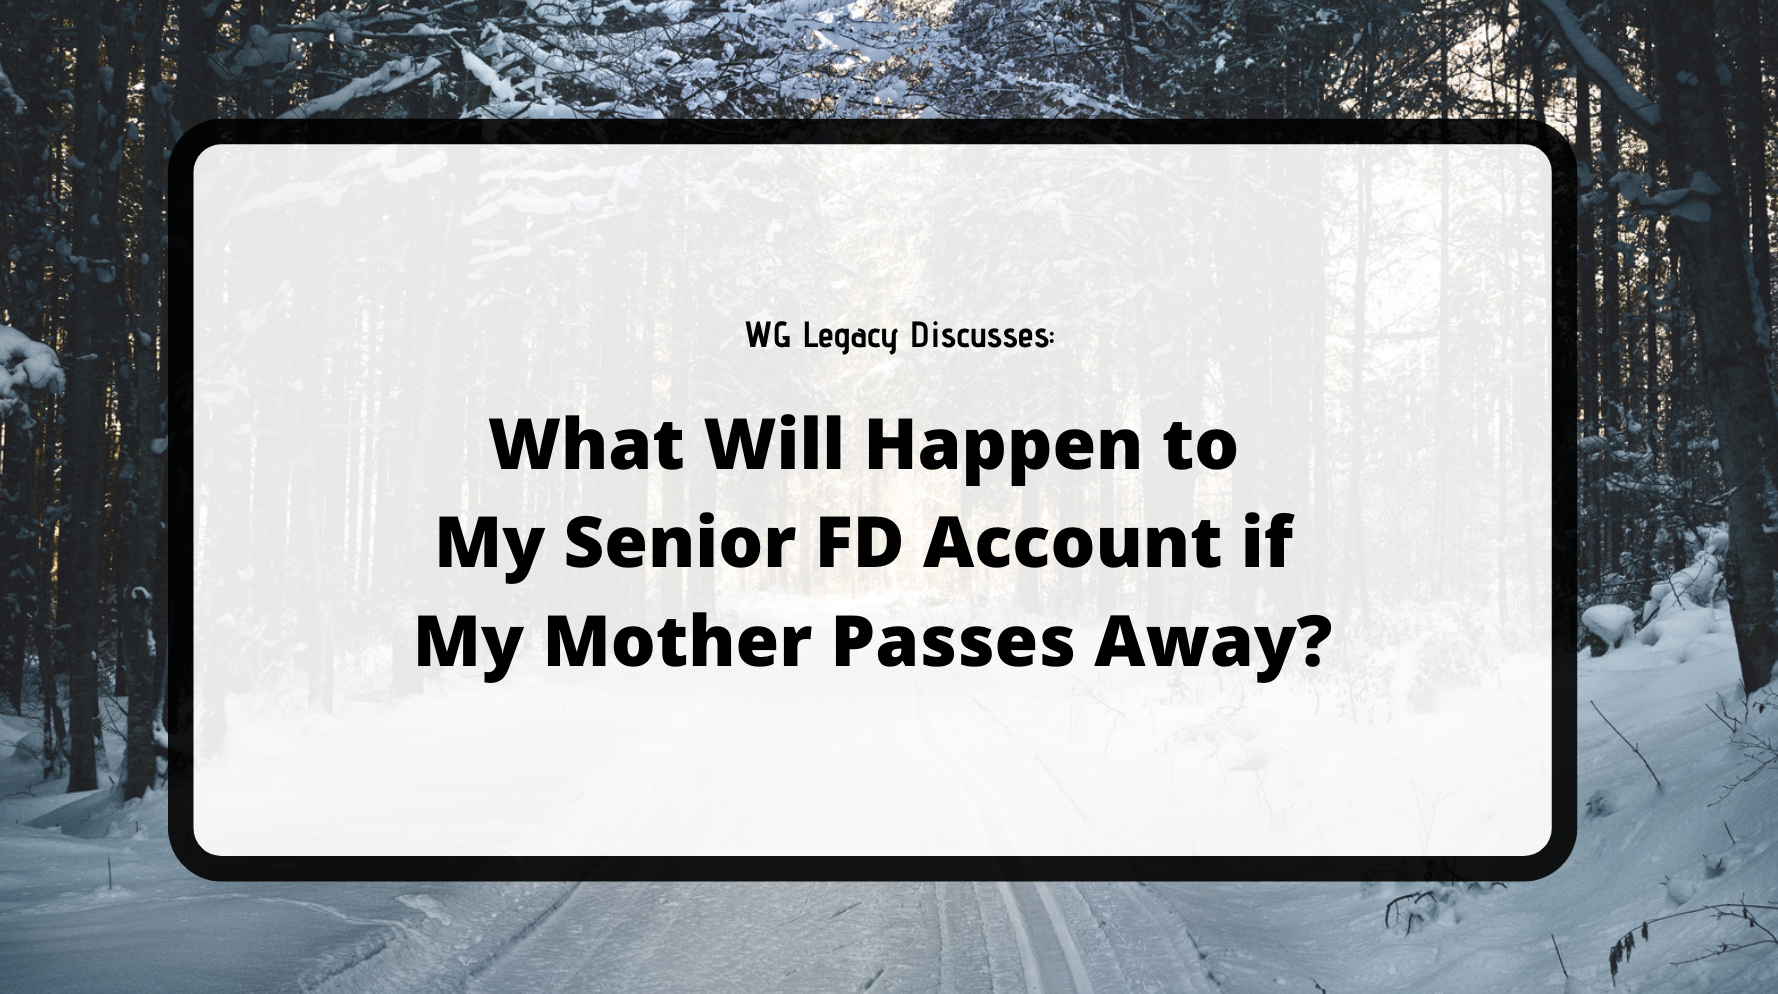 What Will Happen to My Senior FD Account if My Mother Passes Away?